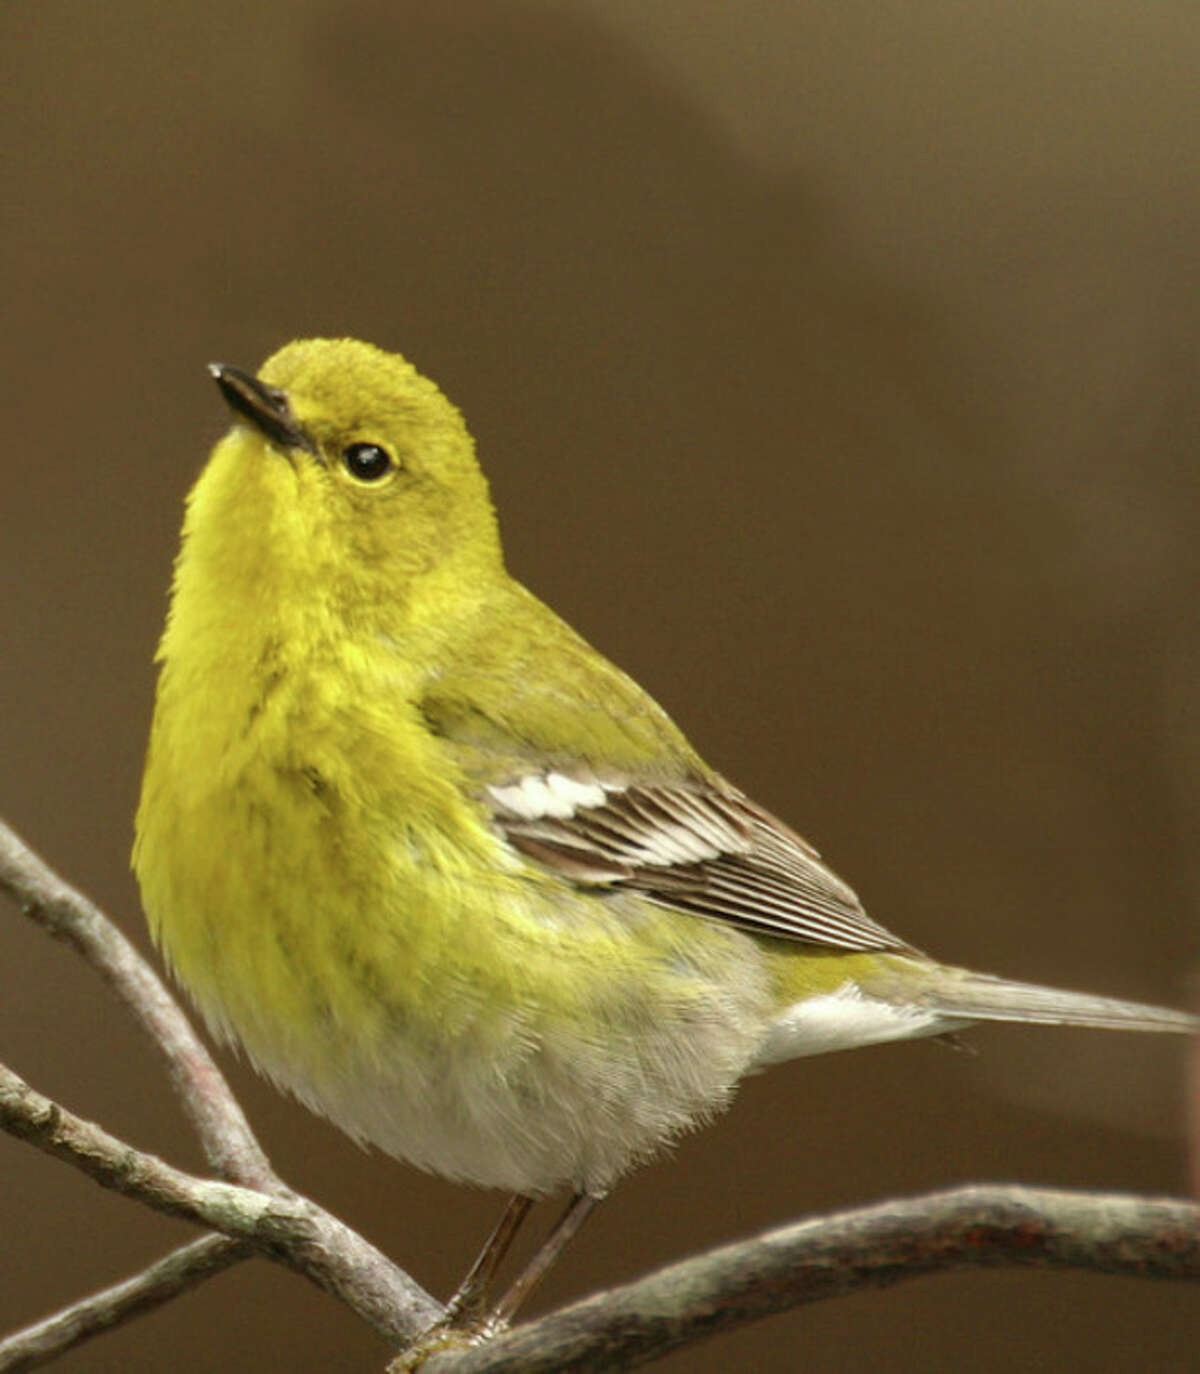 Photo by Chris Bosak The Pine Warbler is a yellow warbler, but it is not a Yellow Warbler.